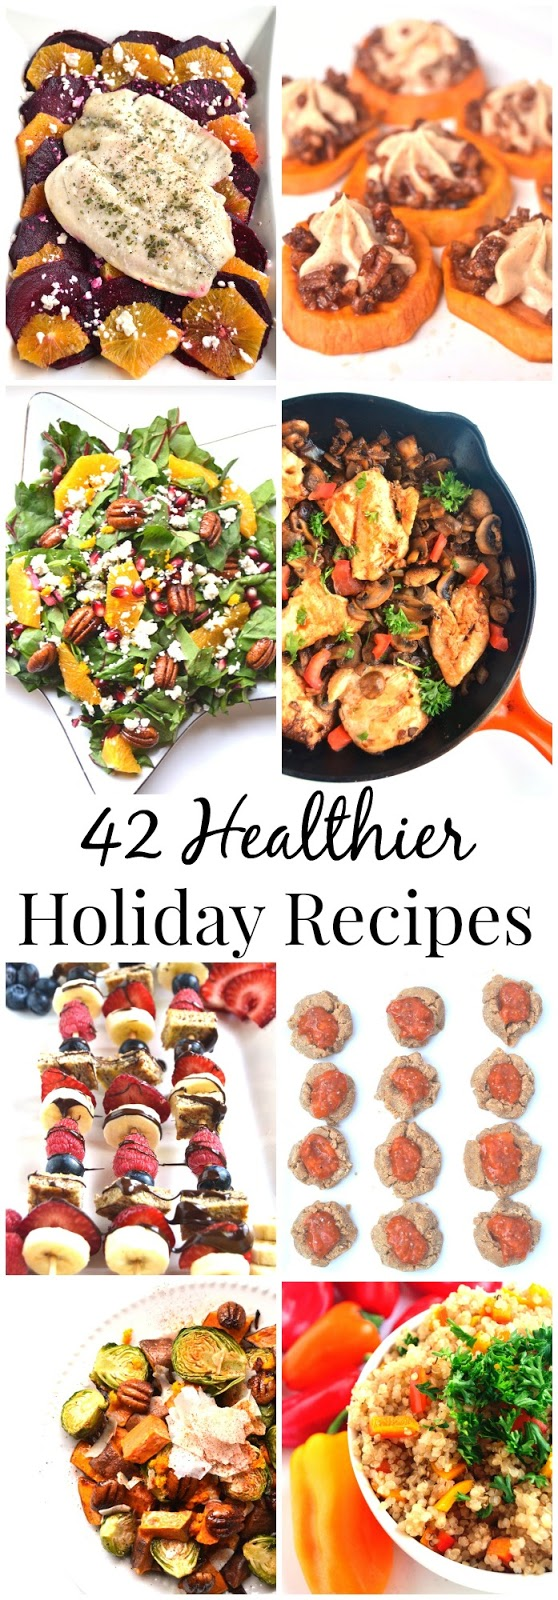 Make these healthier holiday recipes this holiday season for breakfasts, appetizers, desserts, sides and entrees that are sure to please your guests!